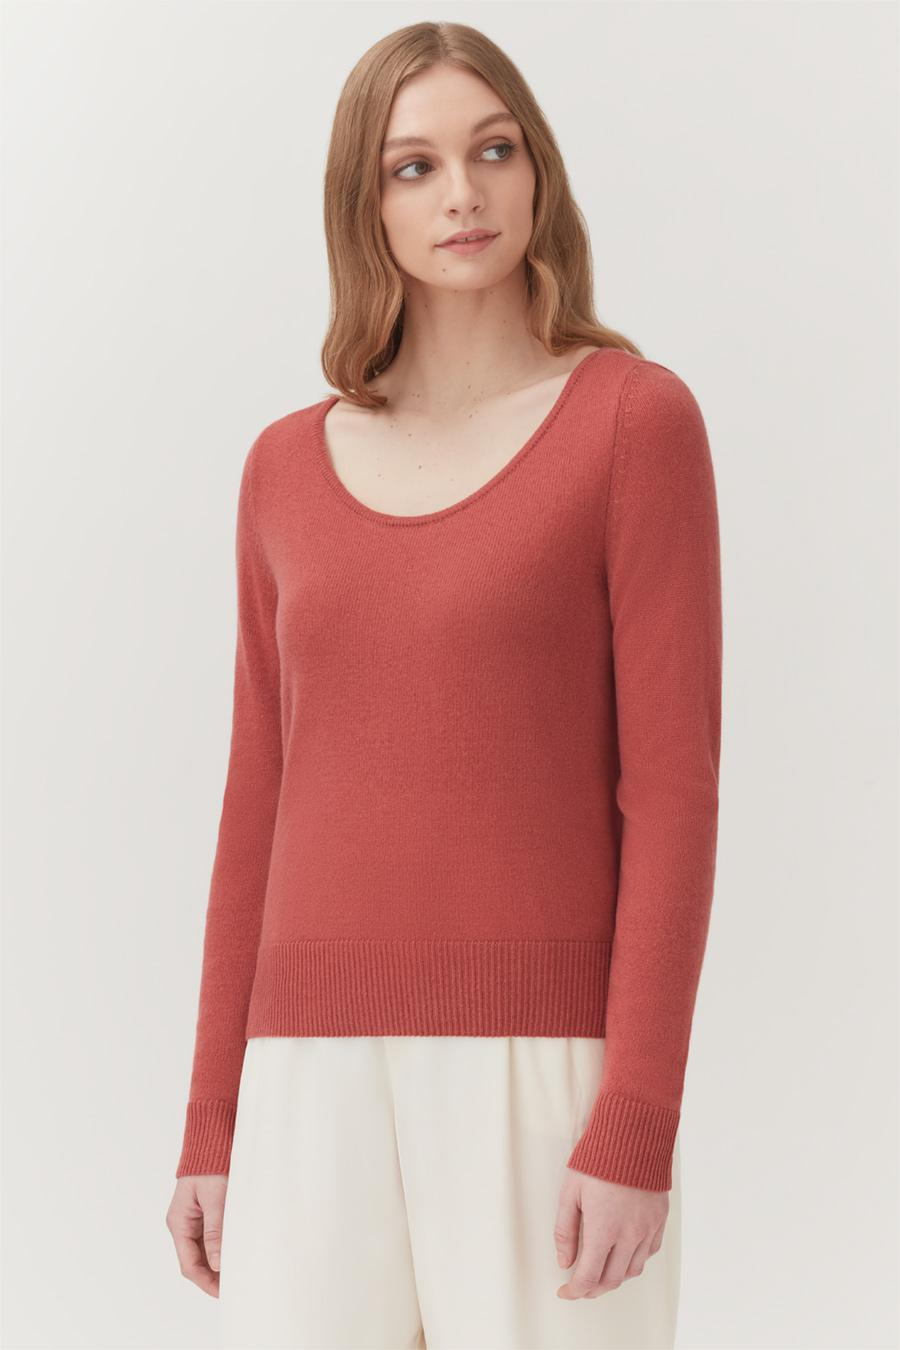 Women's Scoop Neck Sweater in Passion Fruit | Size: 1